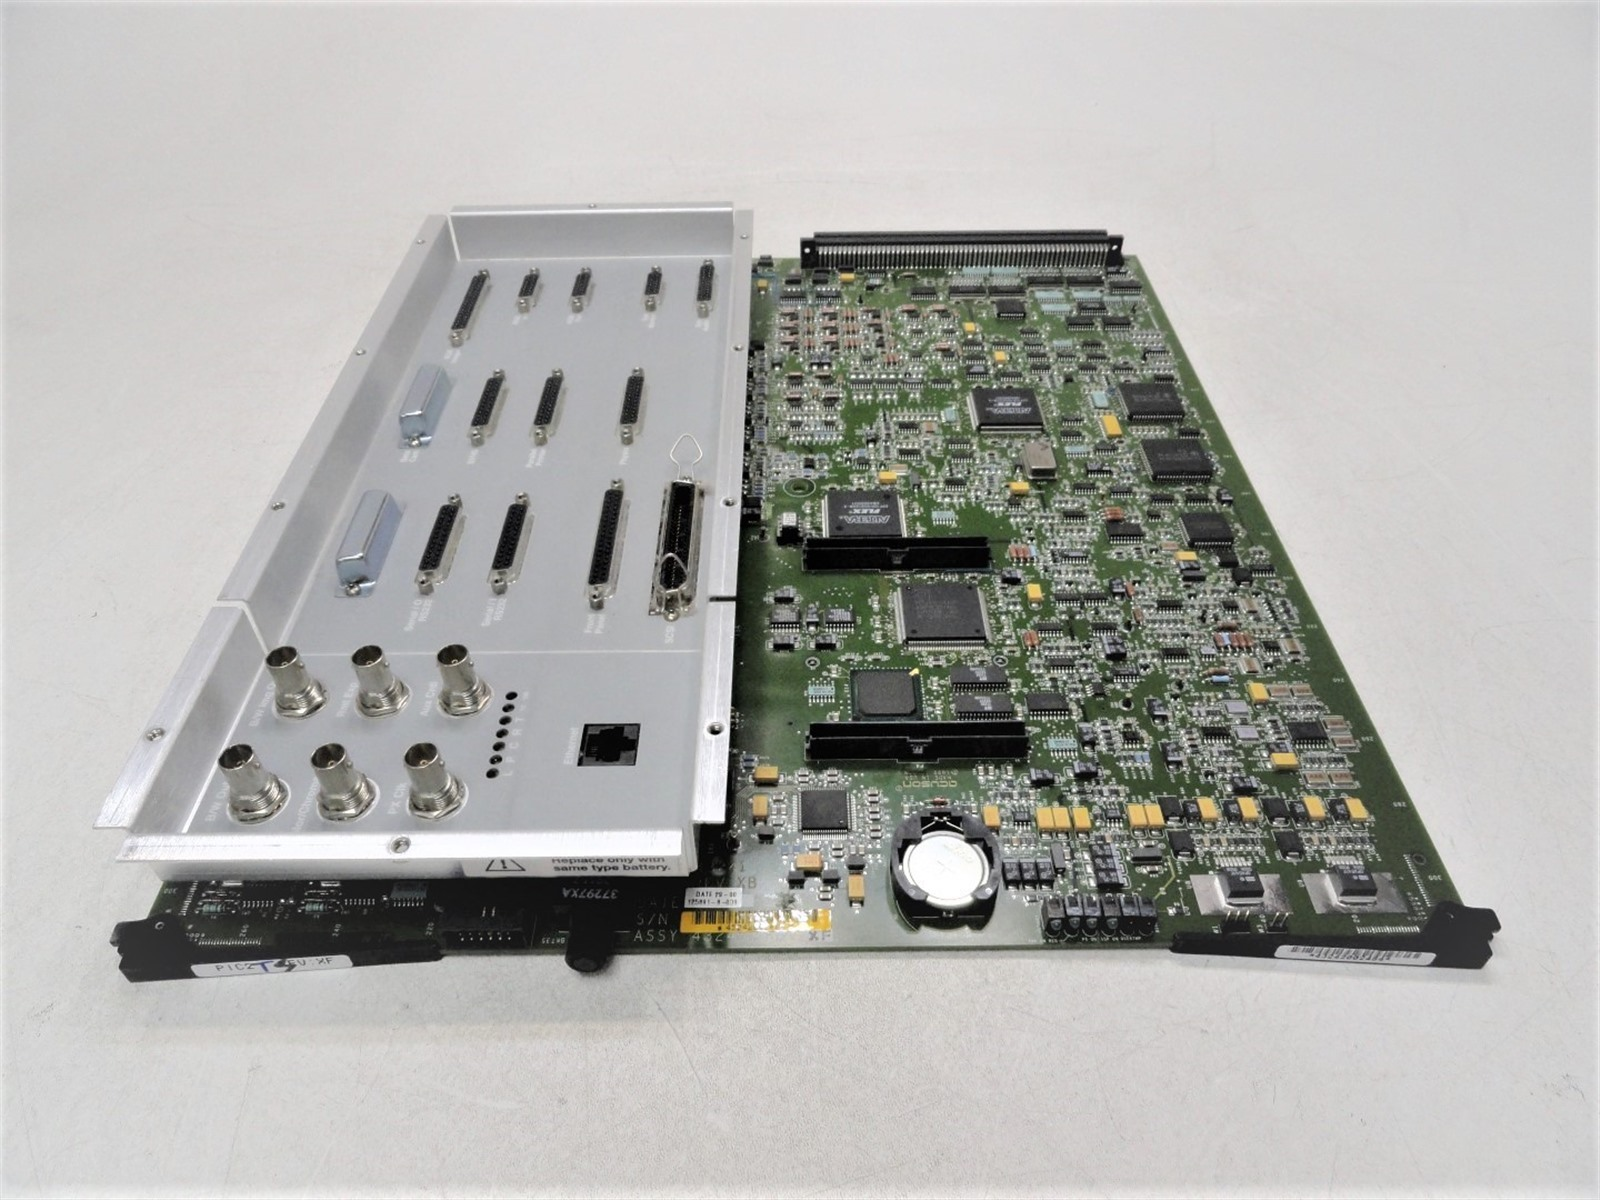 Details about Acuson PIC2 43241 Rev. XF Assembly Board for Siemens Sequoia  512 System